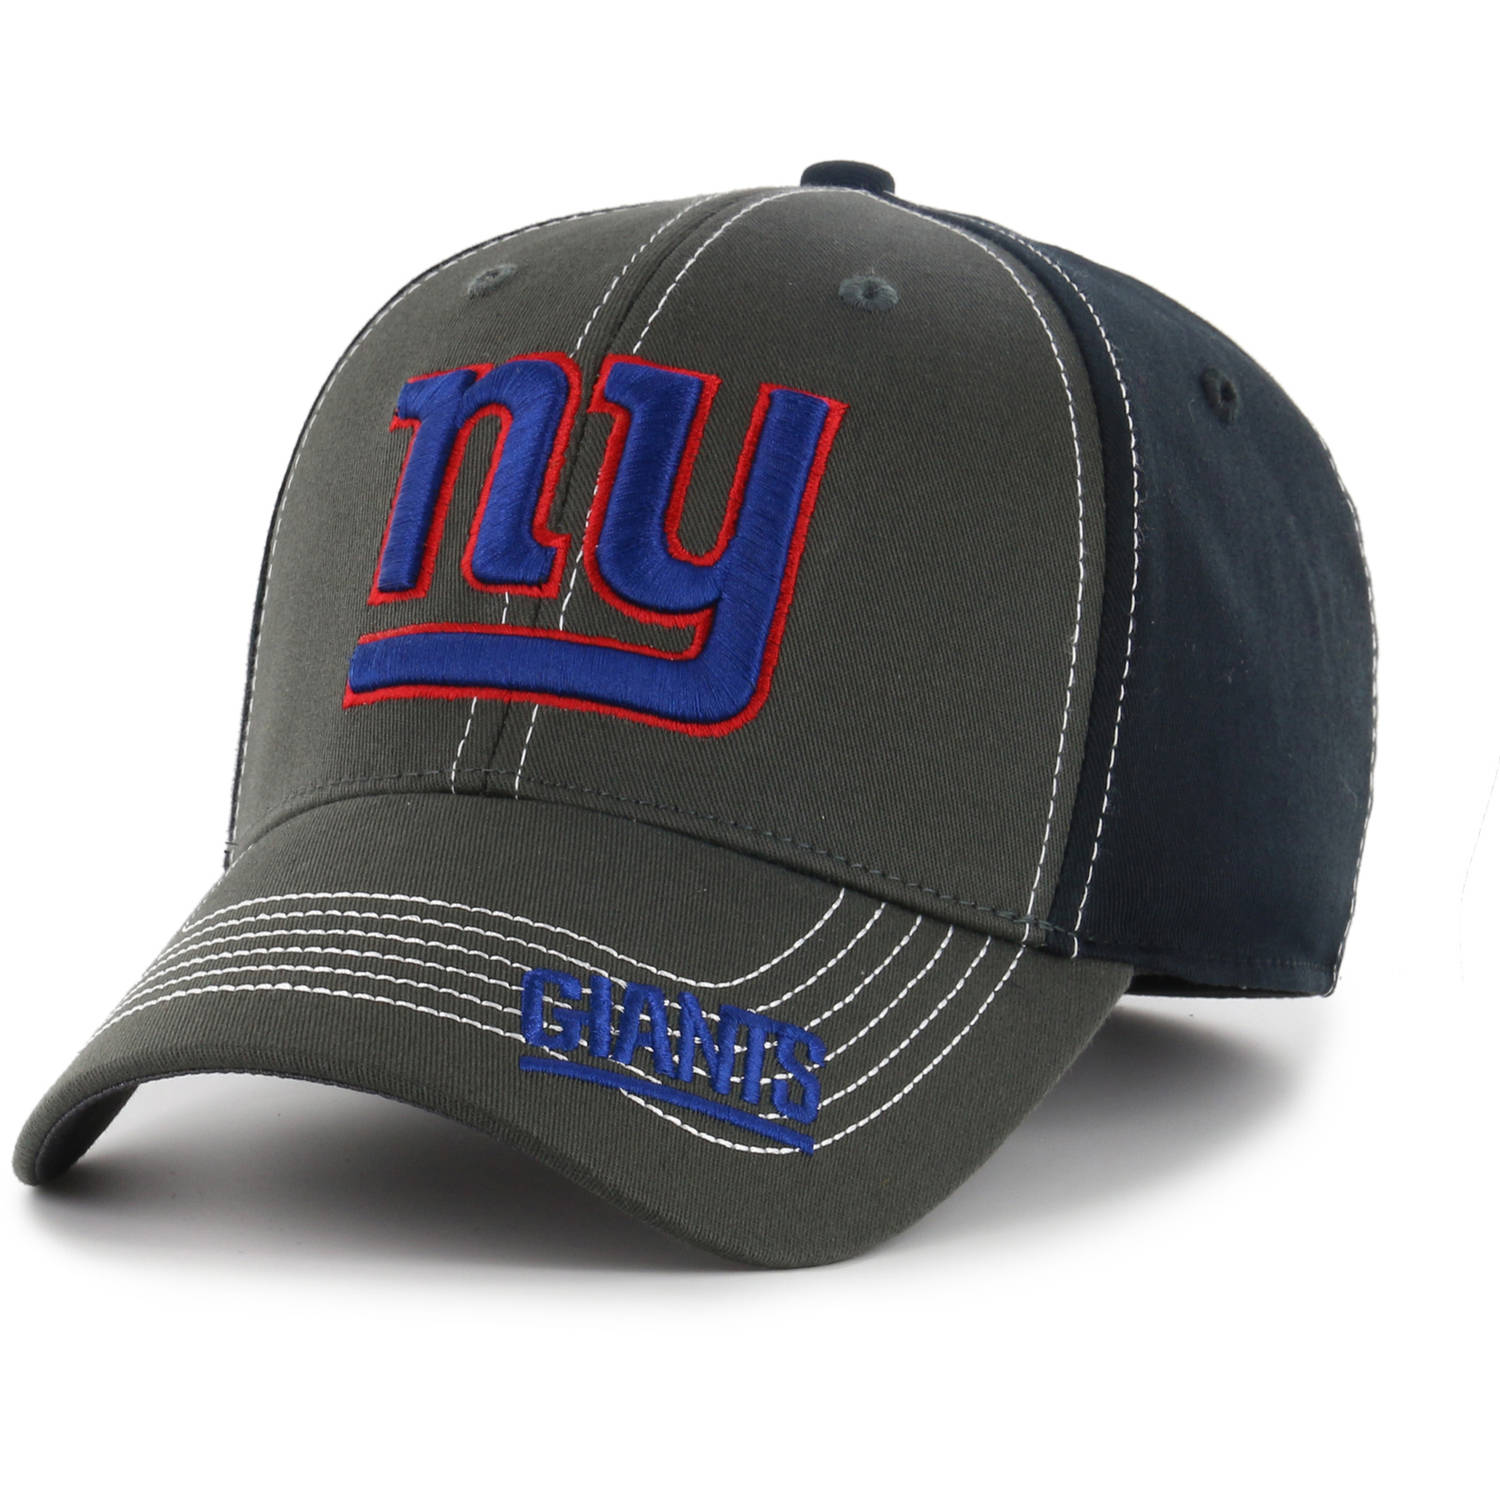 NFL New York Giants Cornerback Cap / Hat by Fan Favorite